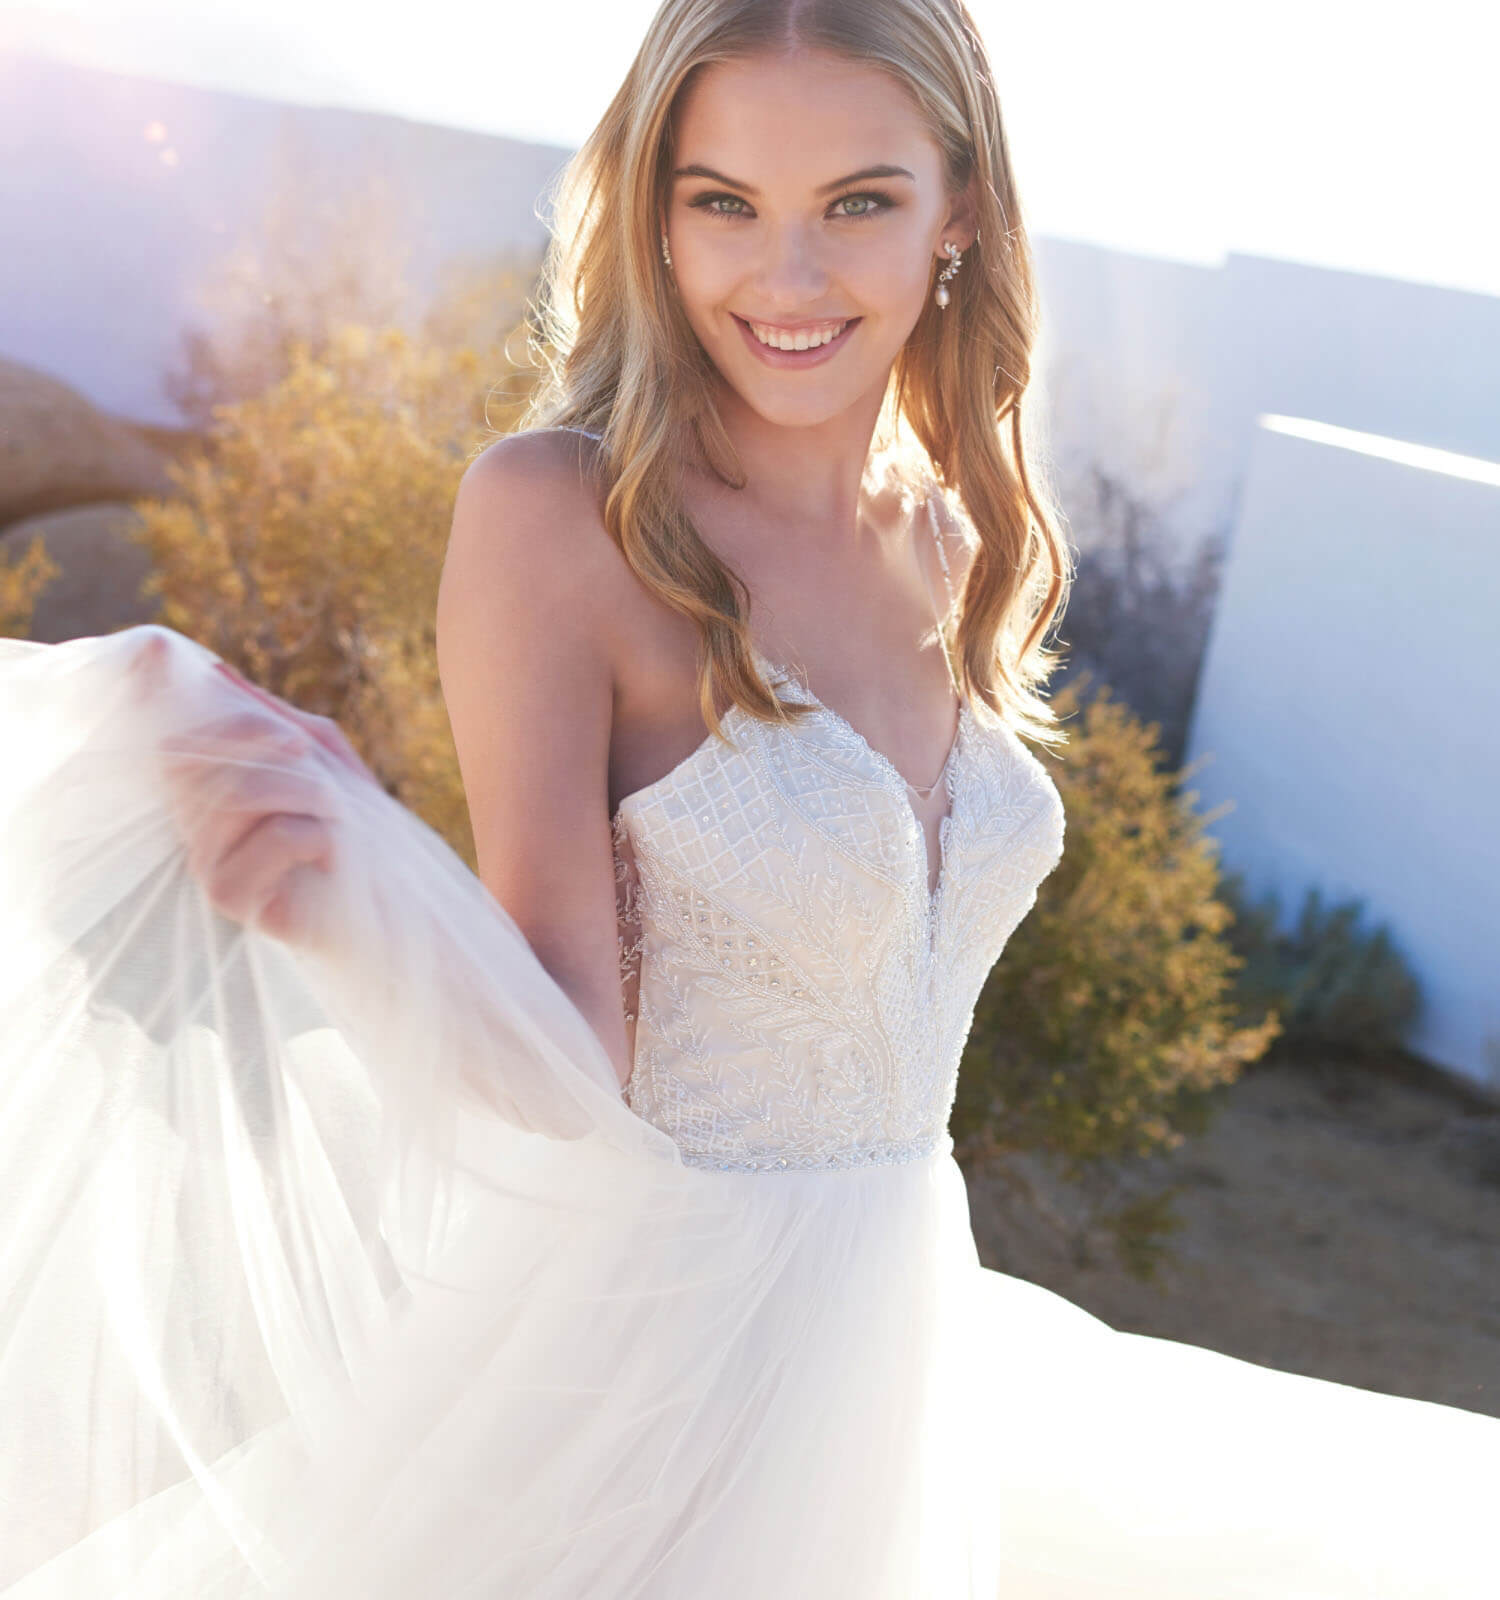 Blonde bride in white wedding dress. Mobile Image